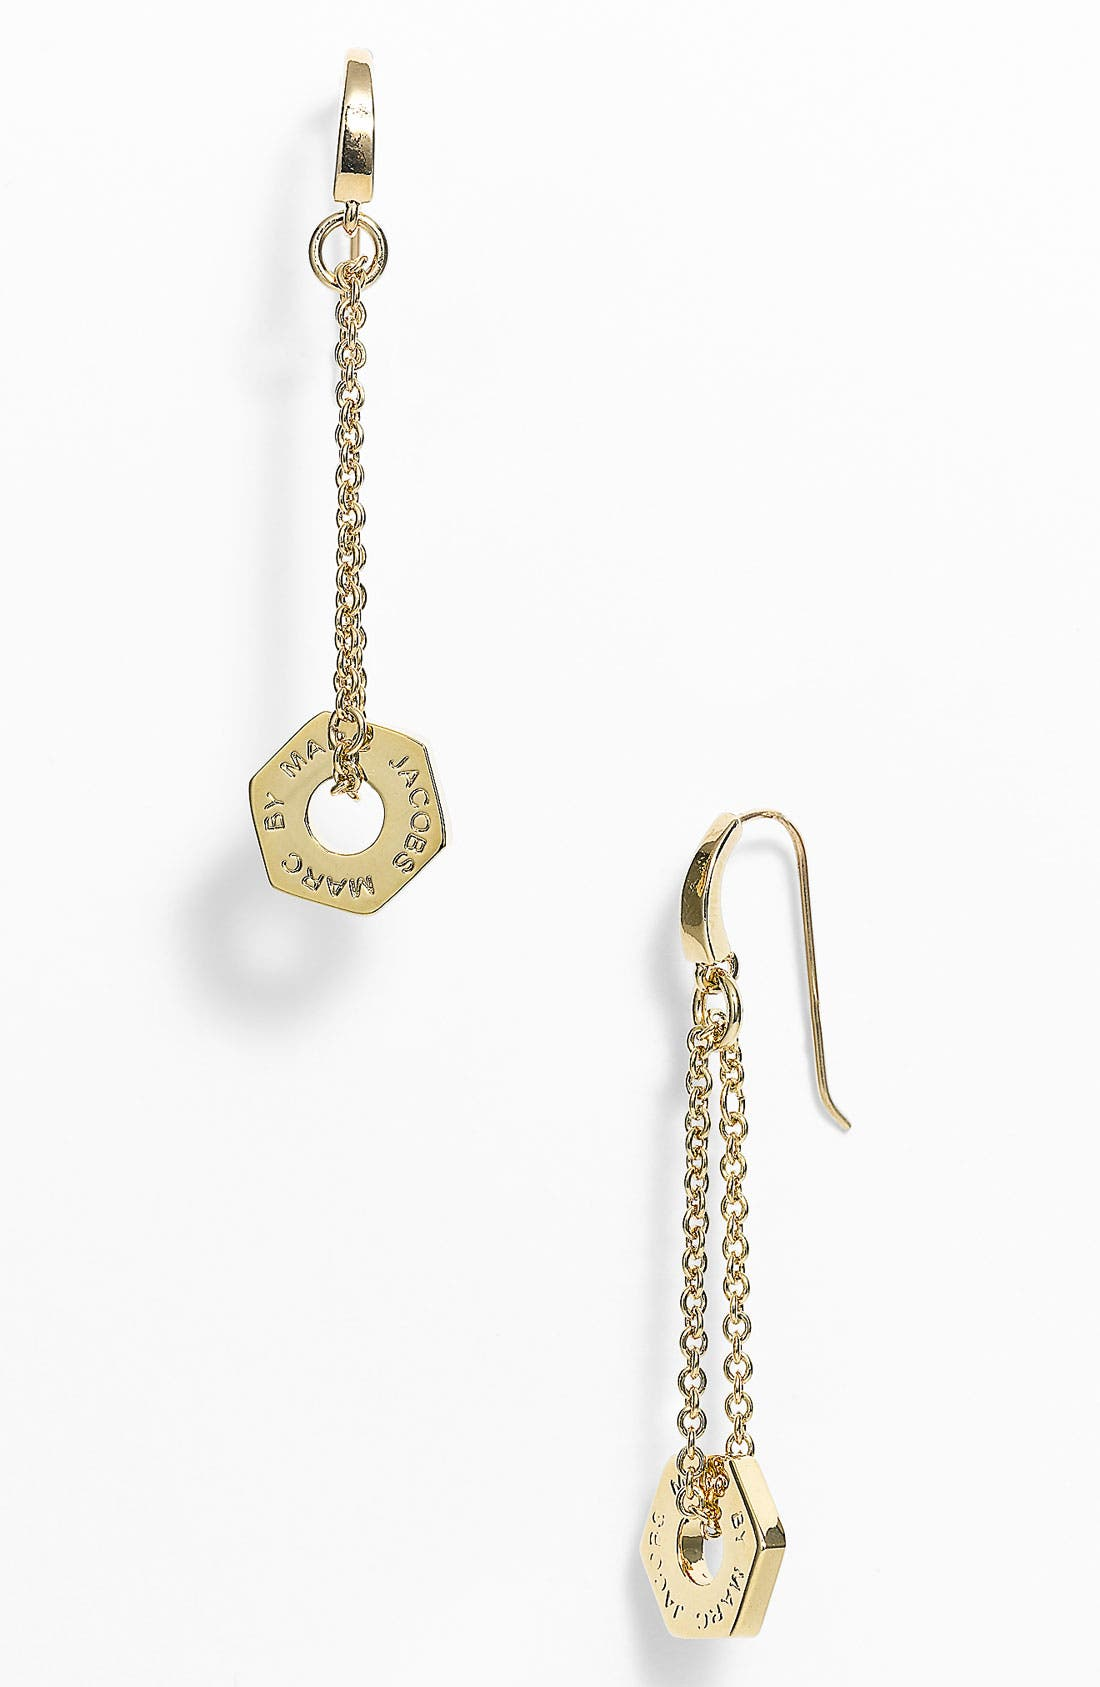 Alternate Image 1 Selected - MARC BY MARC JACOBS 'Bolts' Linear Earrings